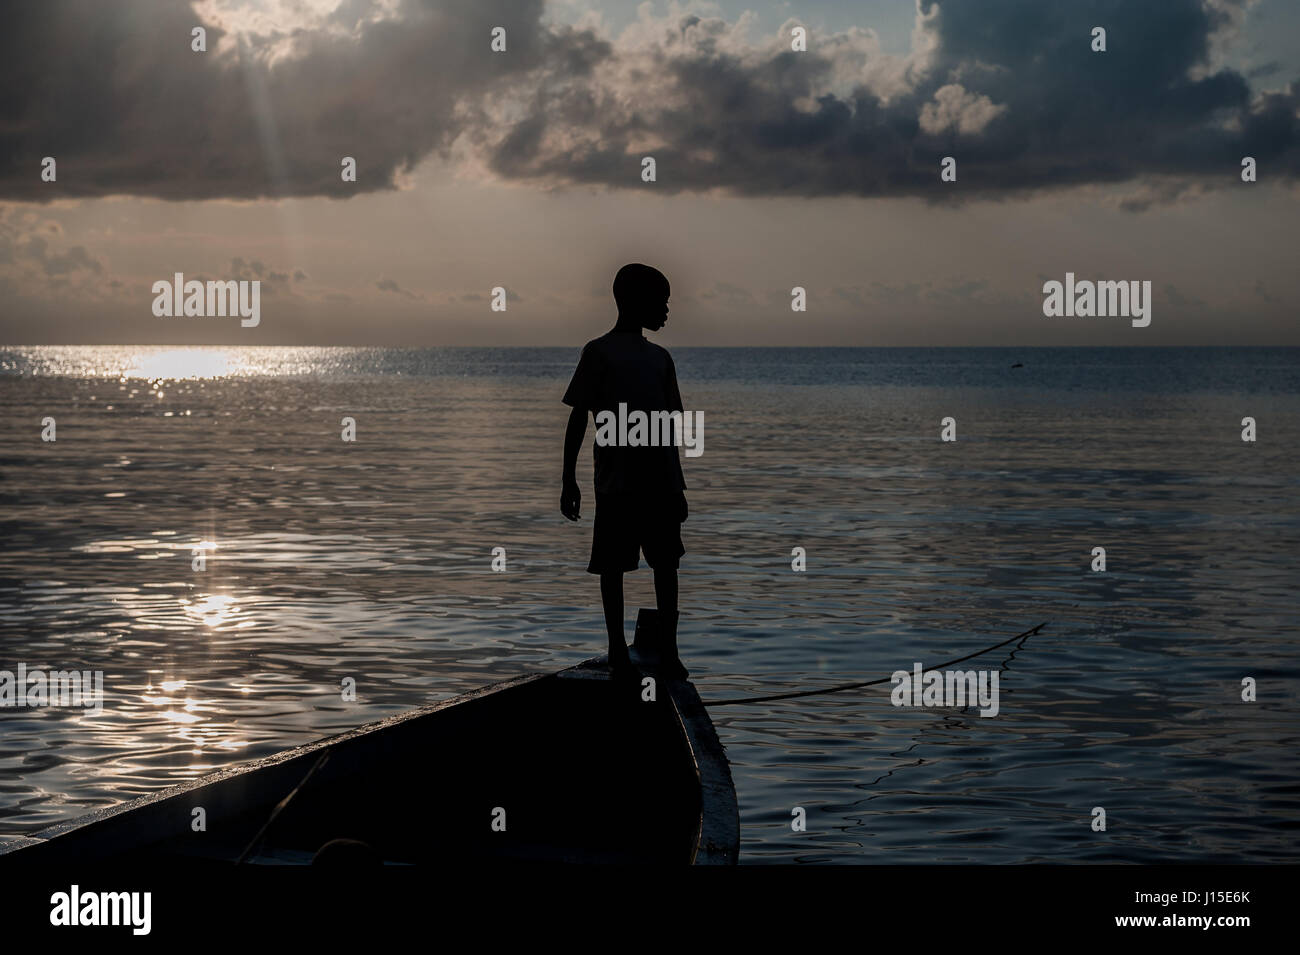 A young boy stands on the bow of a moored boat in Lake Malawi - Stock Image